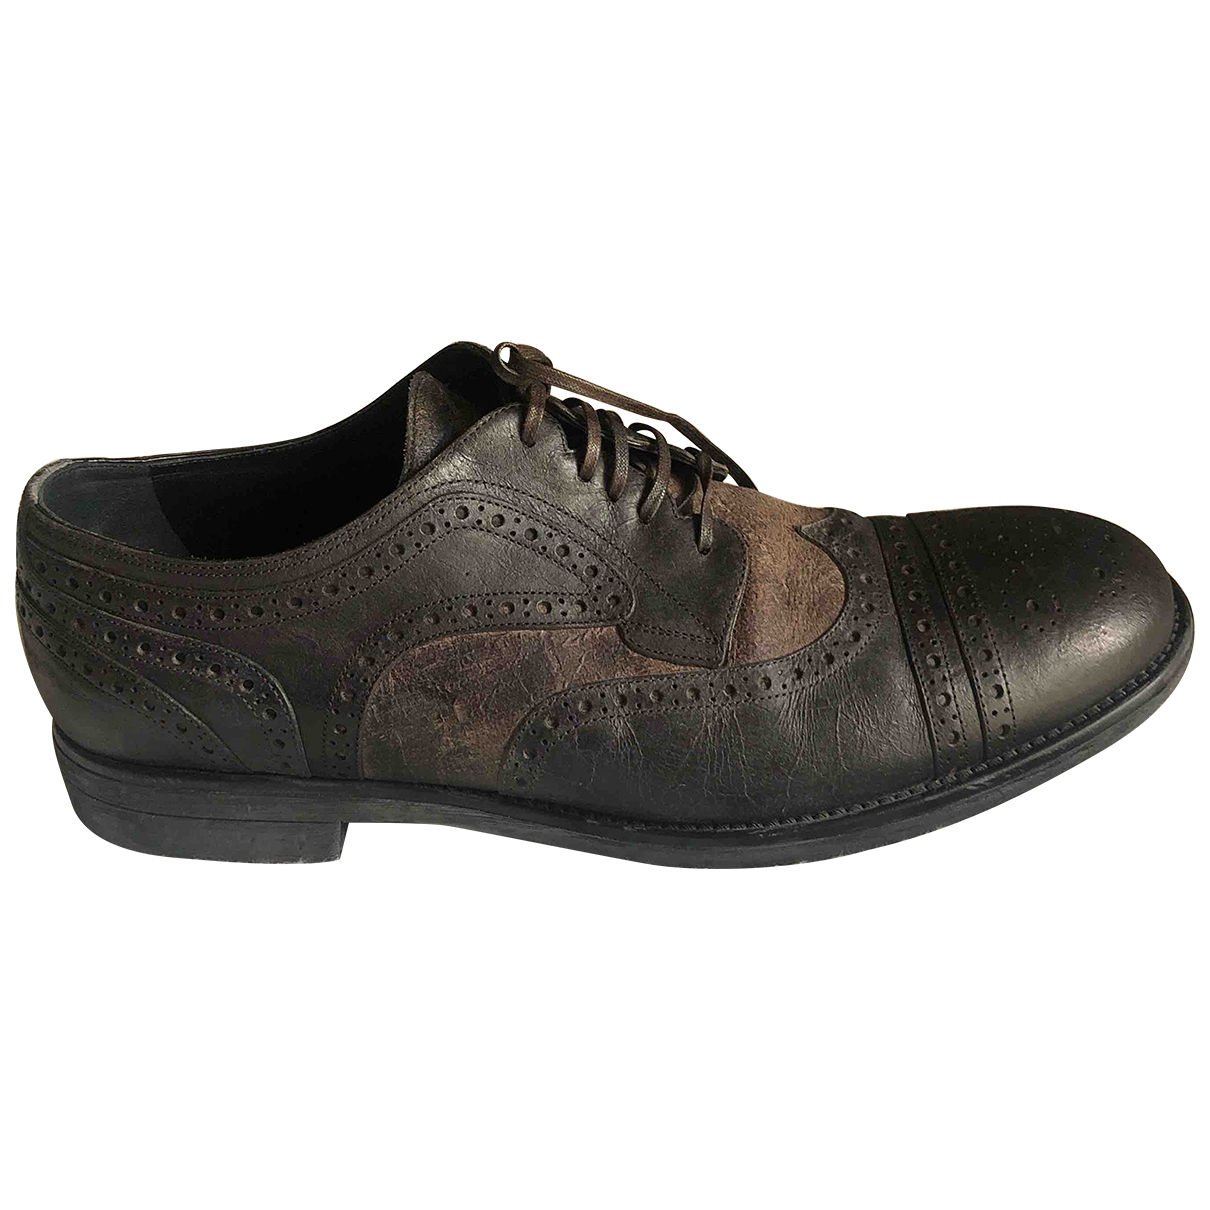 Dolce & Gabbana \N Brown Leather Lace ups for Men 11 US